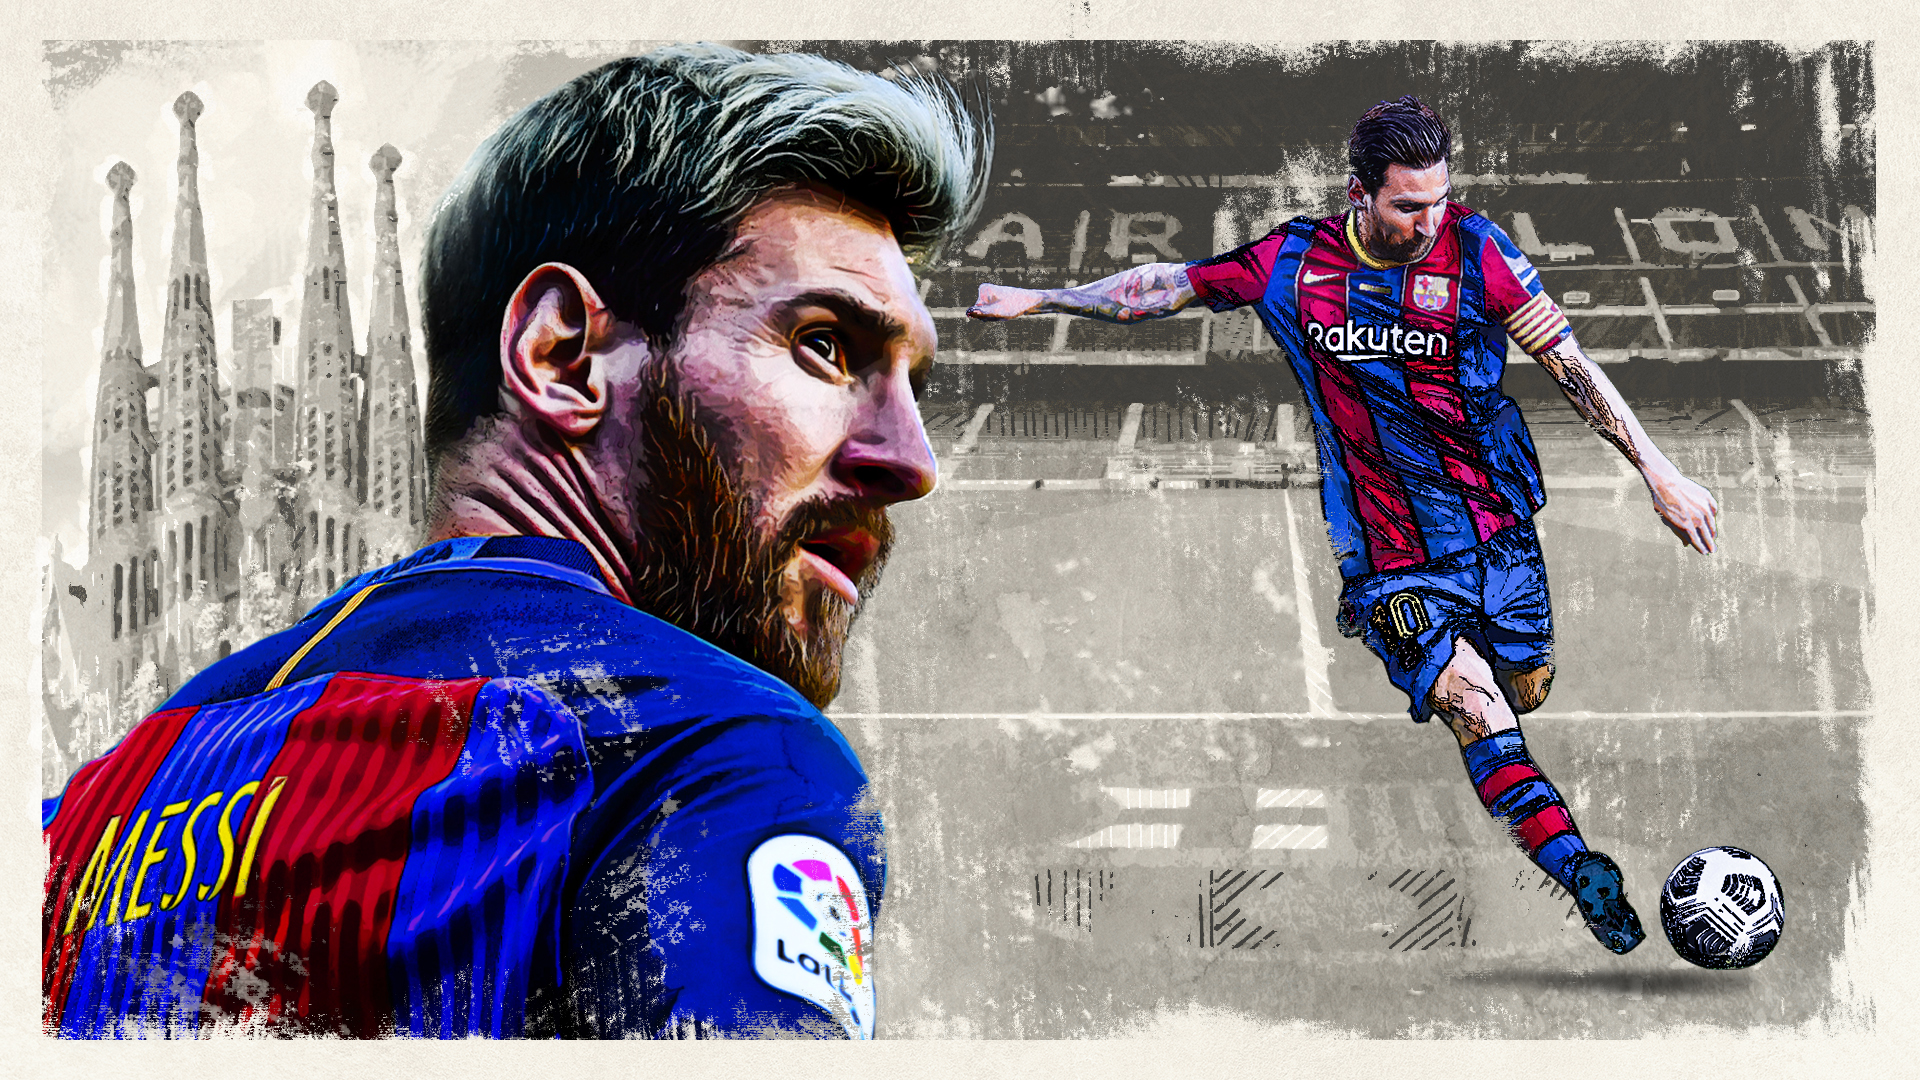 'Messi must follow his heart' - Out-of-contract star backed to return glory to Barcelona